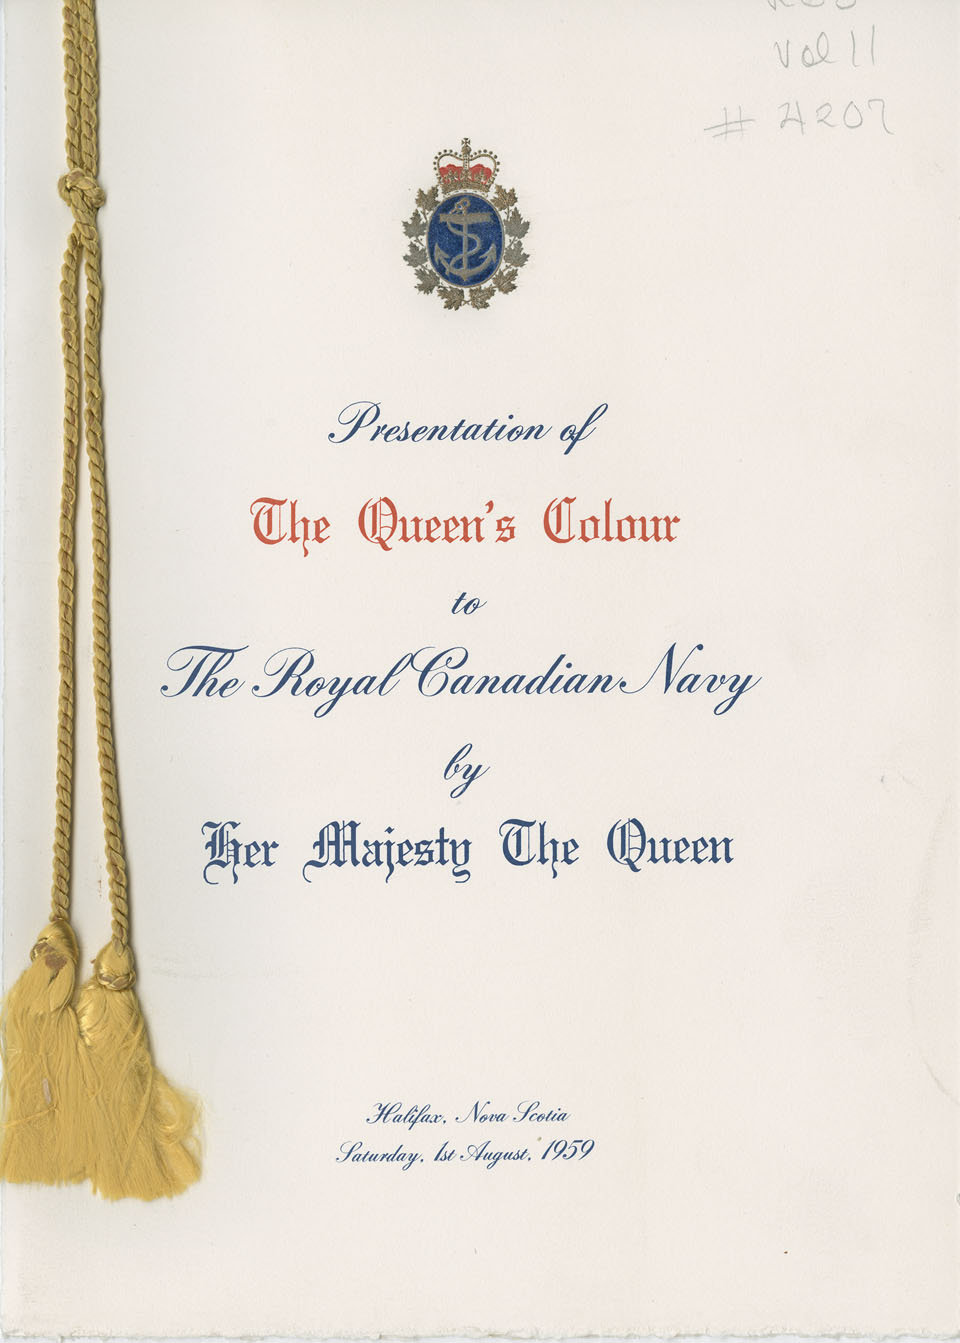 Presentation of The Queen's Colour